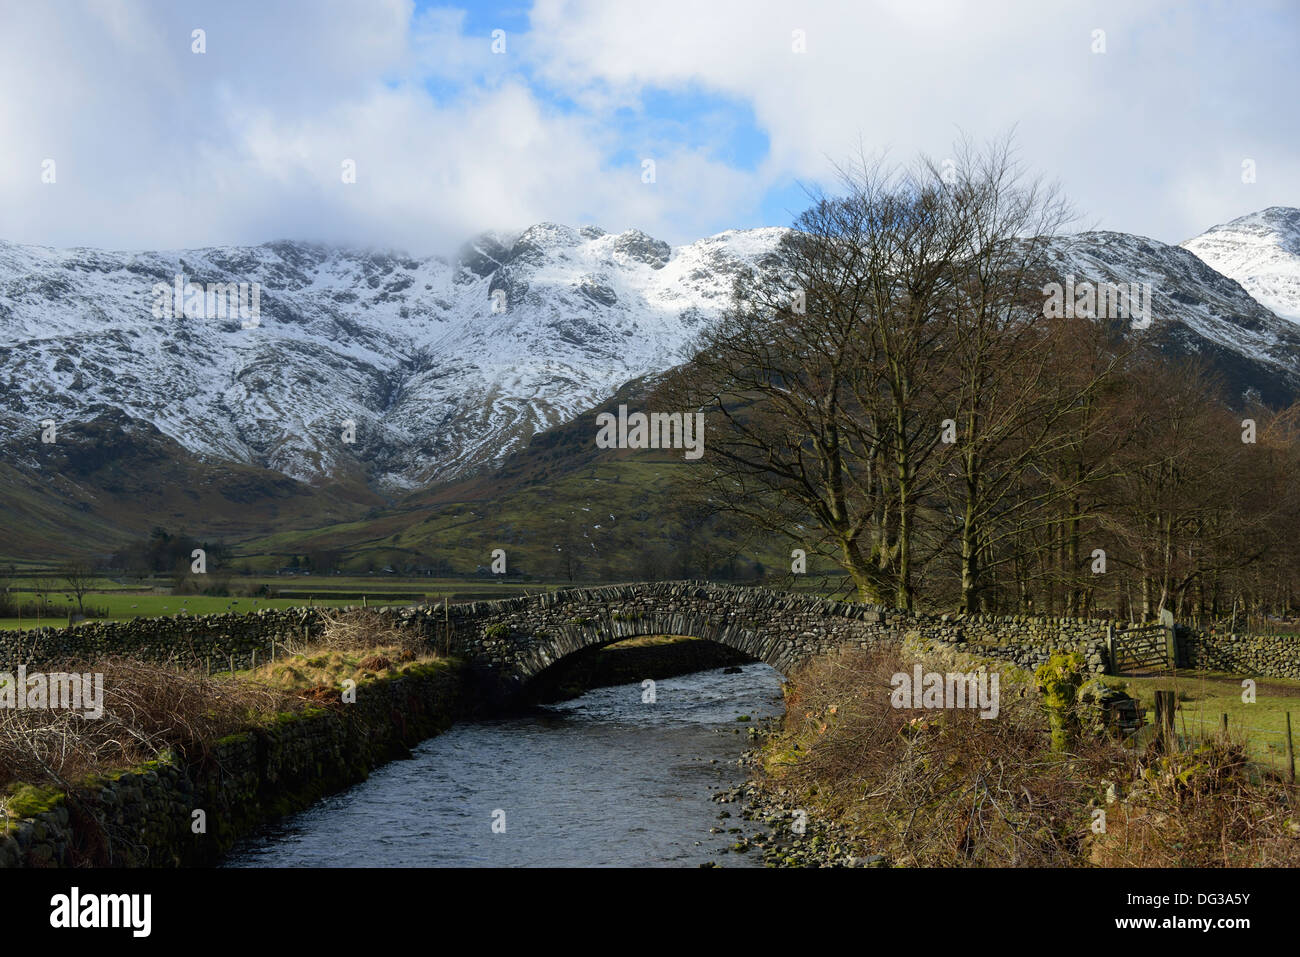 middlefell-bridge-and-crinkle-crags-in-winter-great-langdale-lake-DG3A5Y.jpg